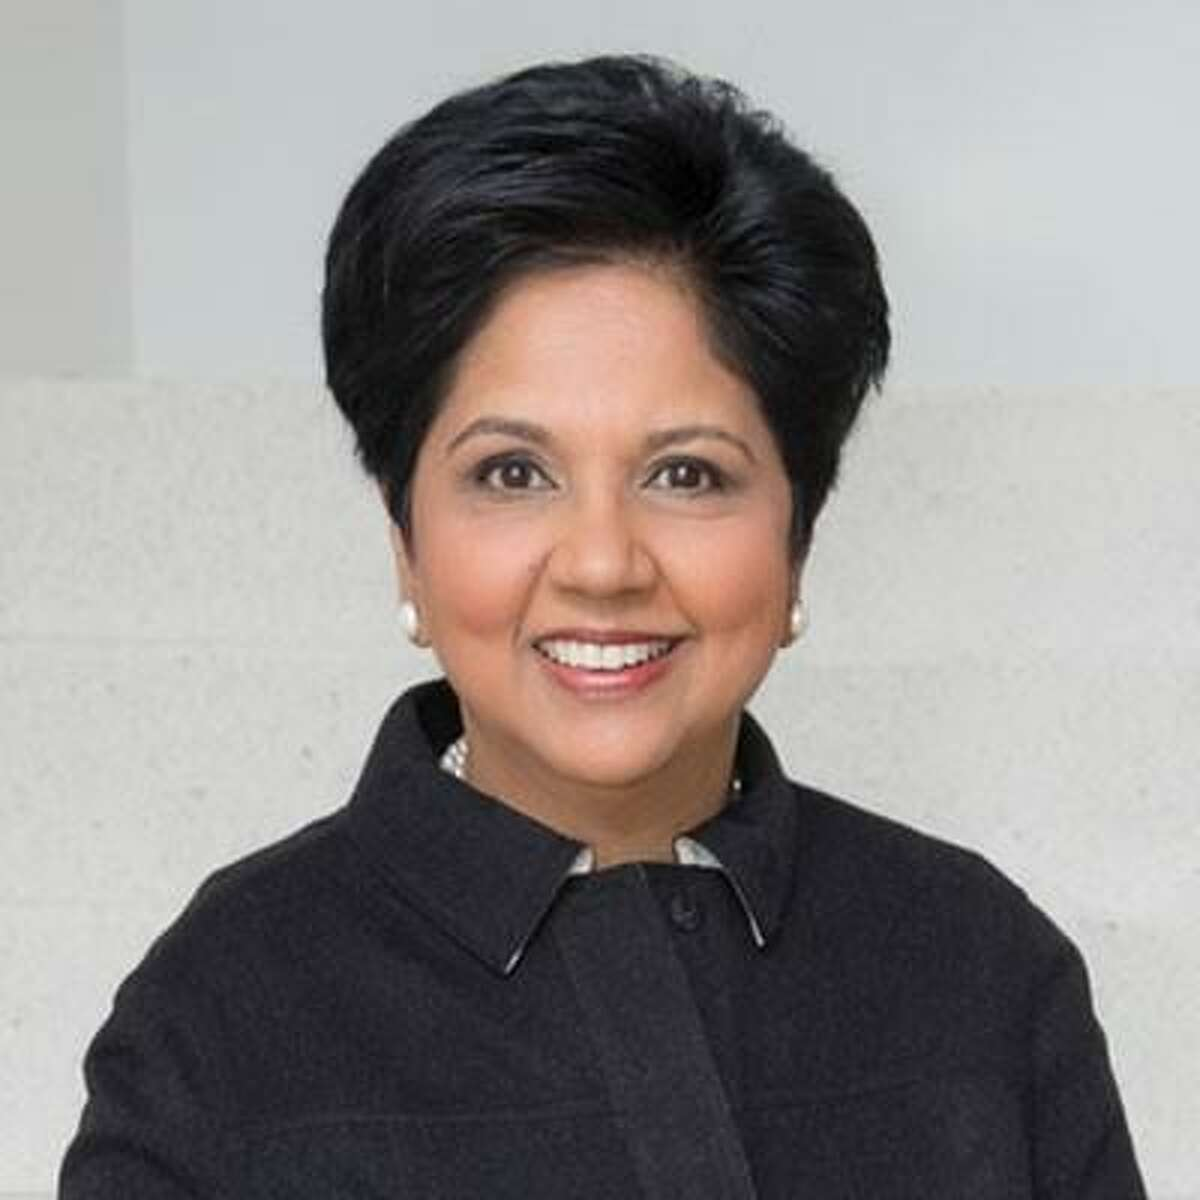 Indra K. Nooyi, former Chairman and CEO of PepsiCo, will receive the History in the Making Award from the Greenwich Historical Society on May 8.